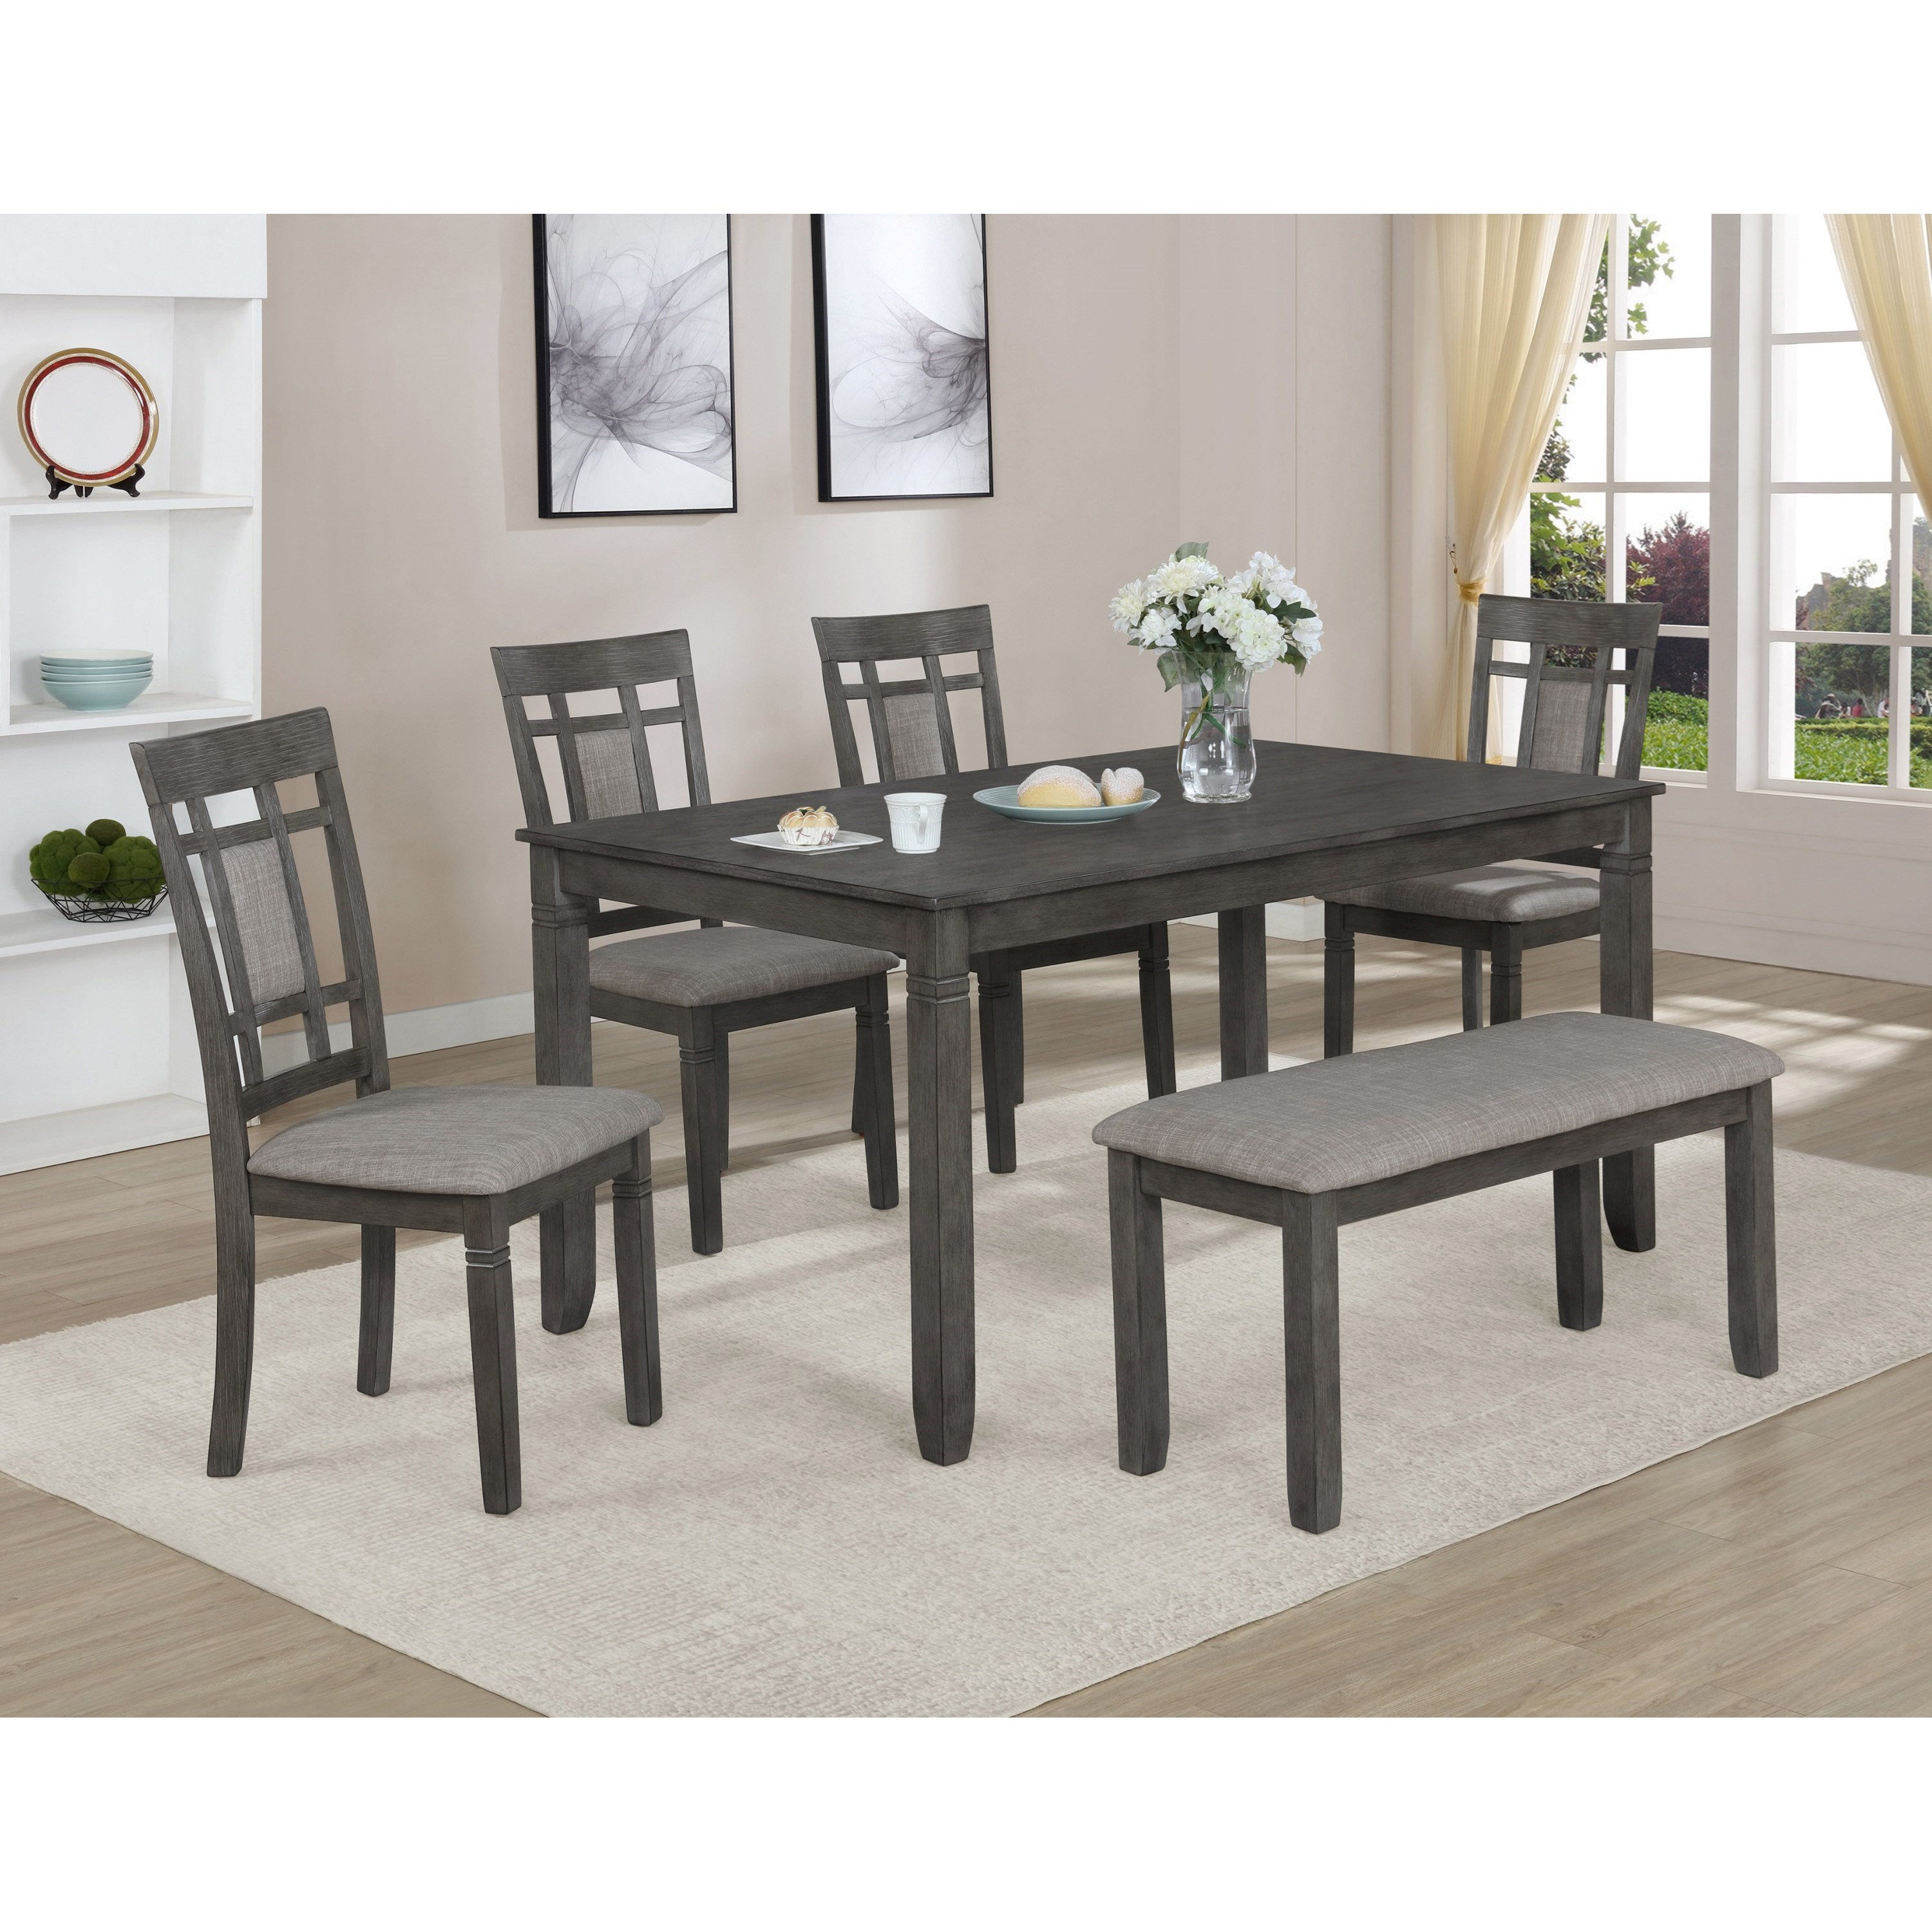 Paige 6-Piece Table and Chair Set with Bench by Crown Mark at Northeast Factory Direct